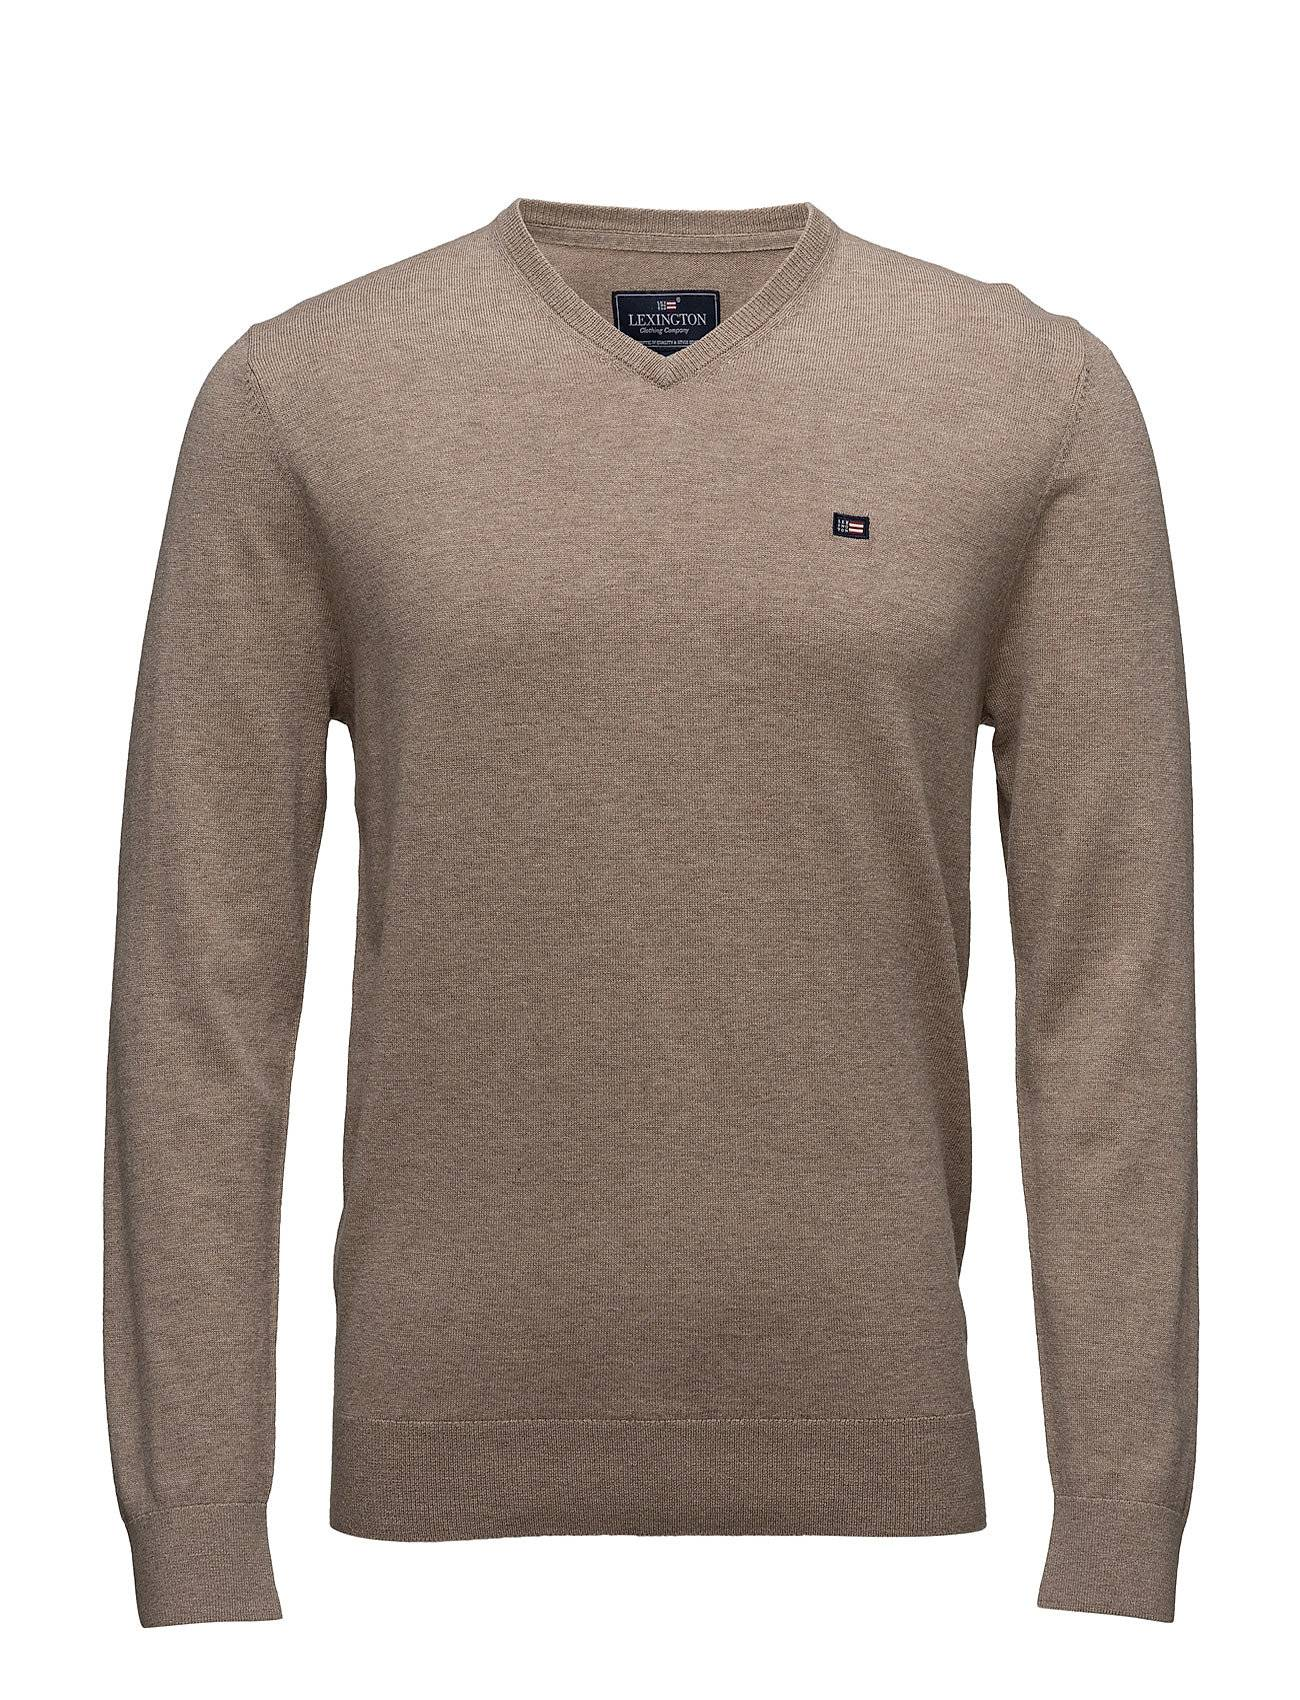 Lexington Company Nicholas V-Neck Sweater